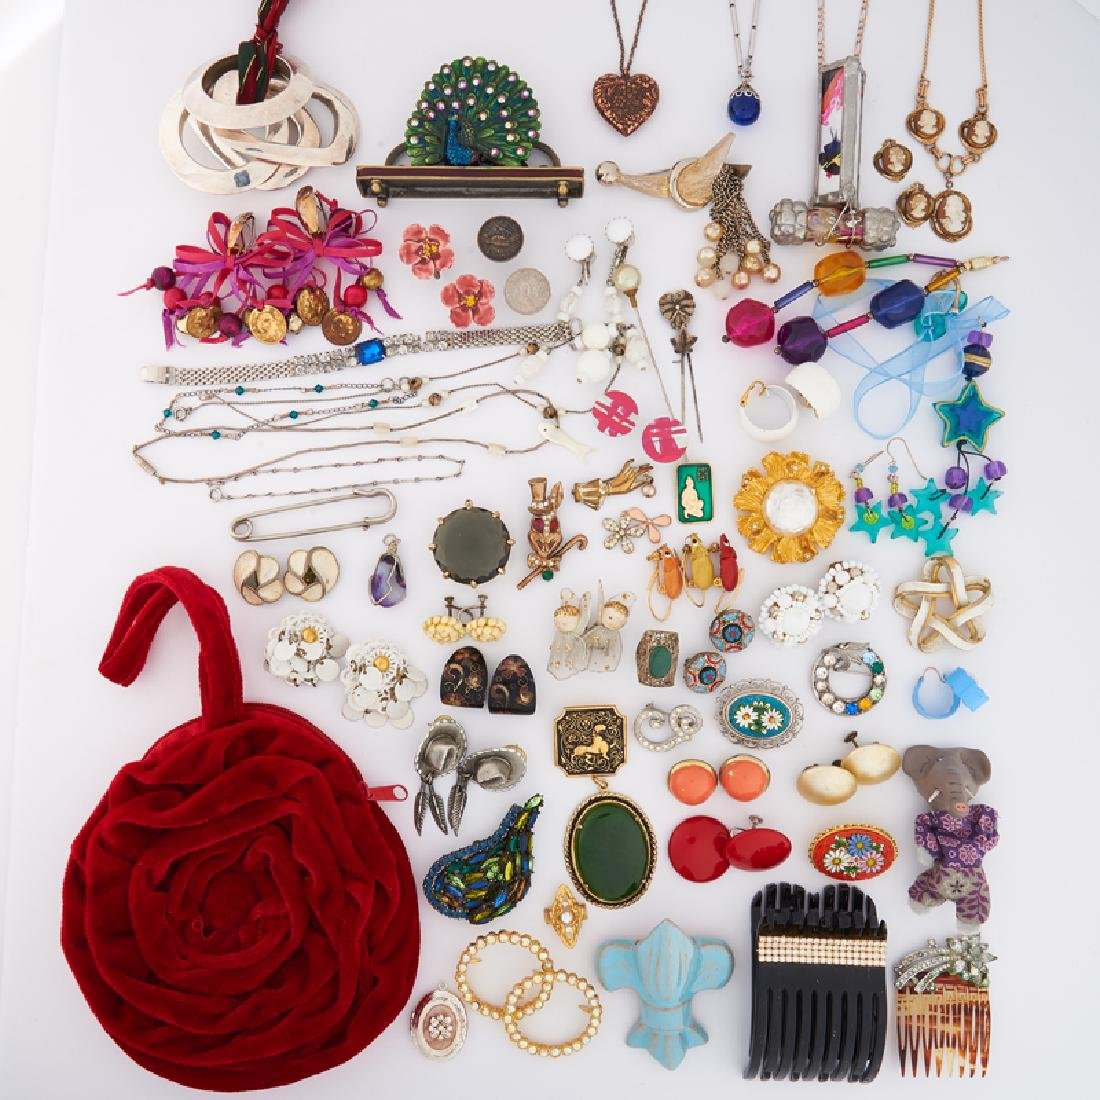 COLLECTION OF COSTUME JEWELRY, ACCESSORIES & FINDINGS